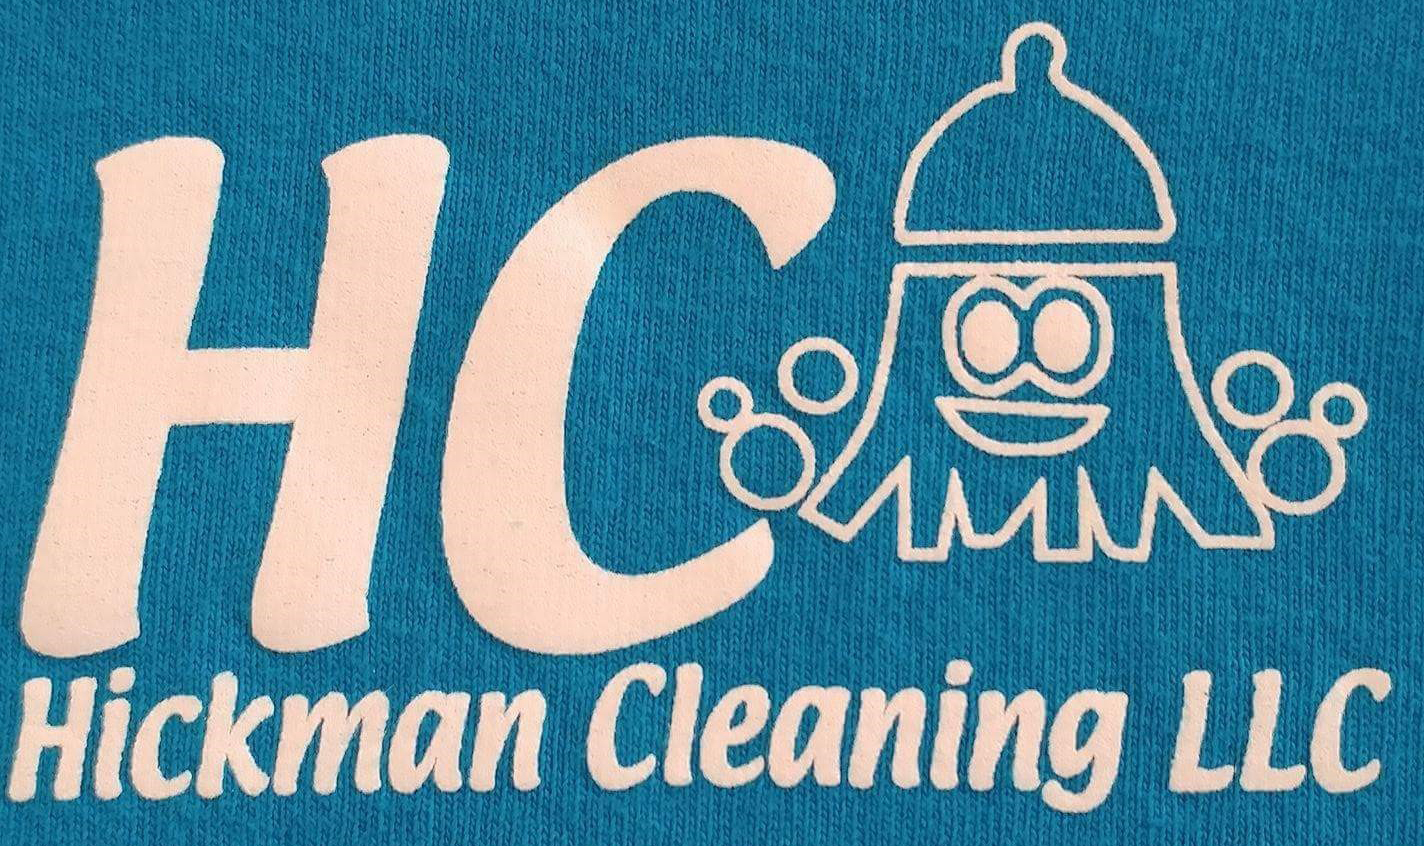 hickman cleaning